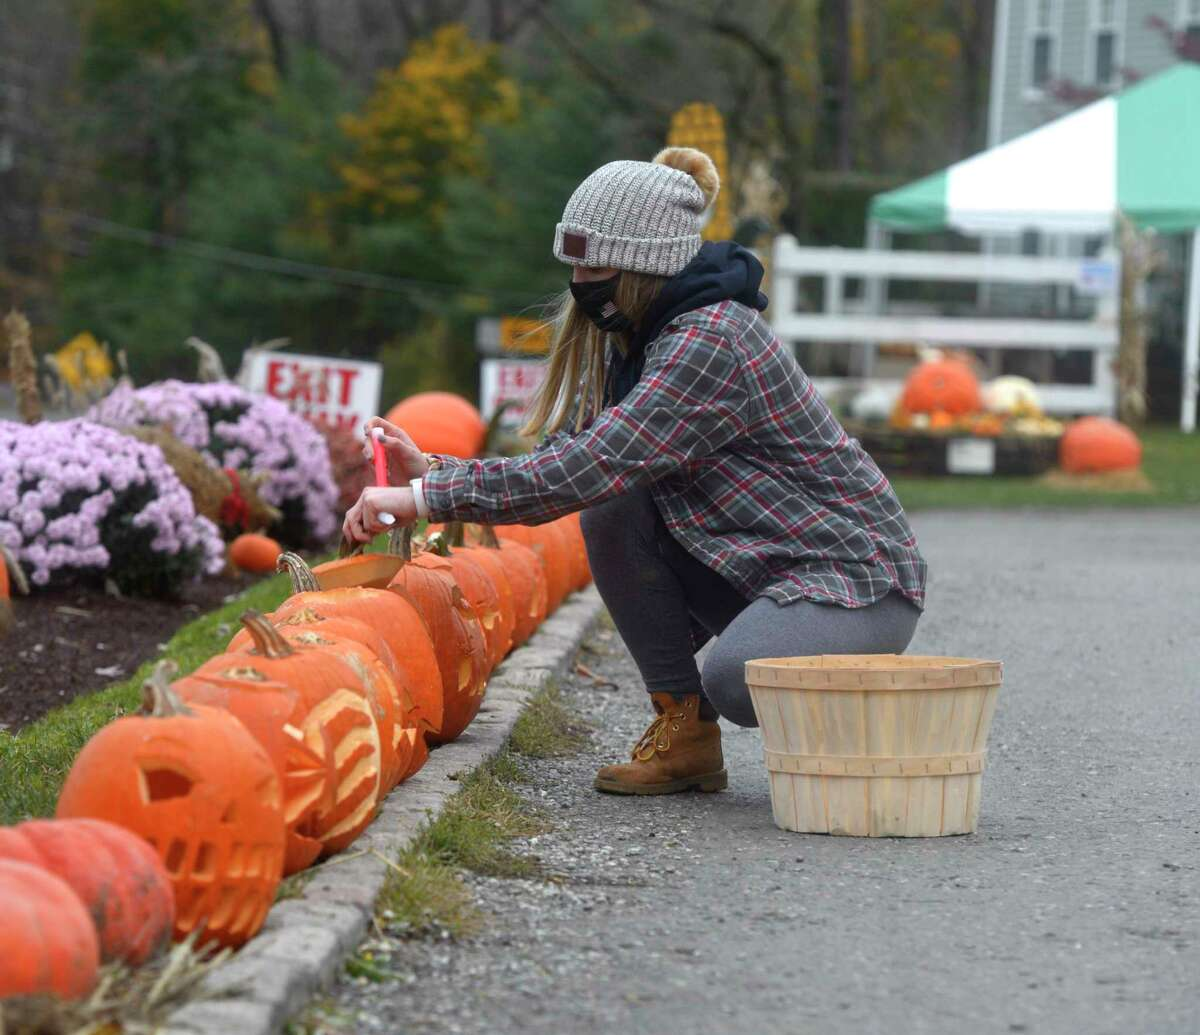 Sydney Yorio drops a glow stick into a carved pumpkin on display as Halas Farm tries to beat the Guinness World Record for the most carved pumpkins. Friday, October 30, 2020, in Danbury, Conn.